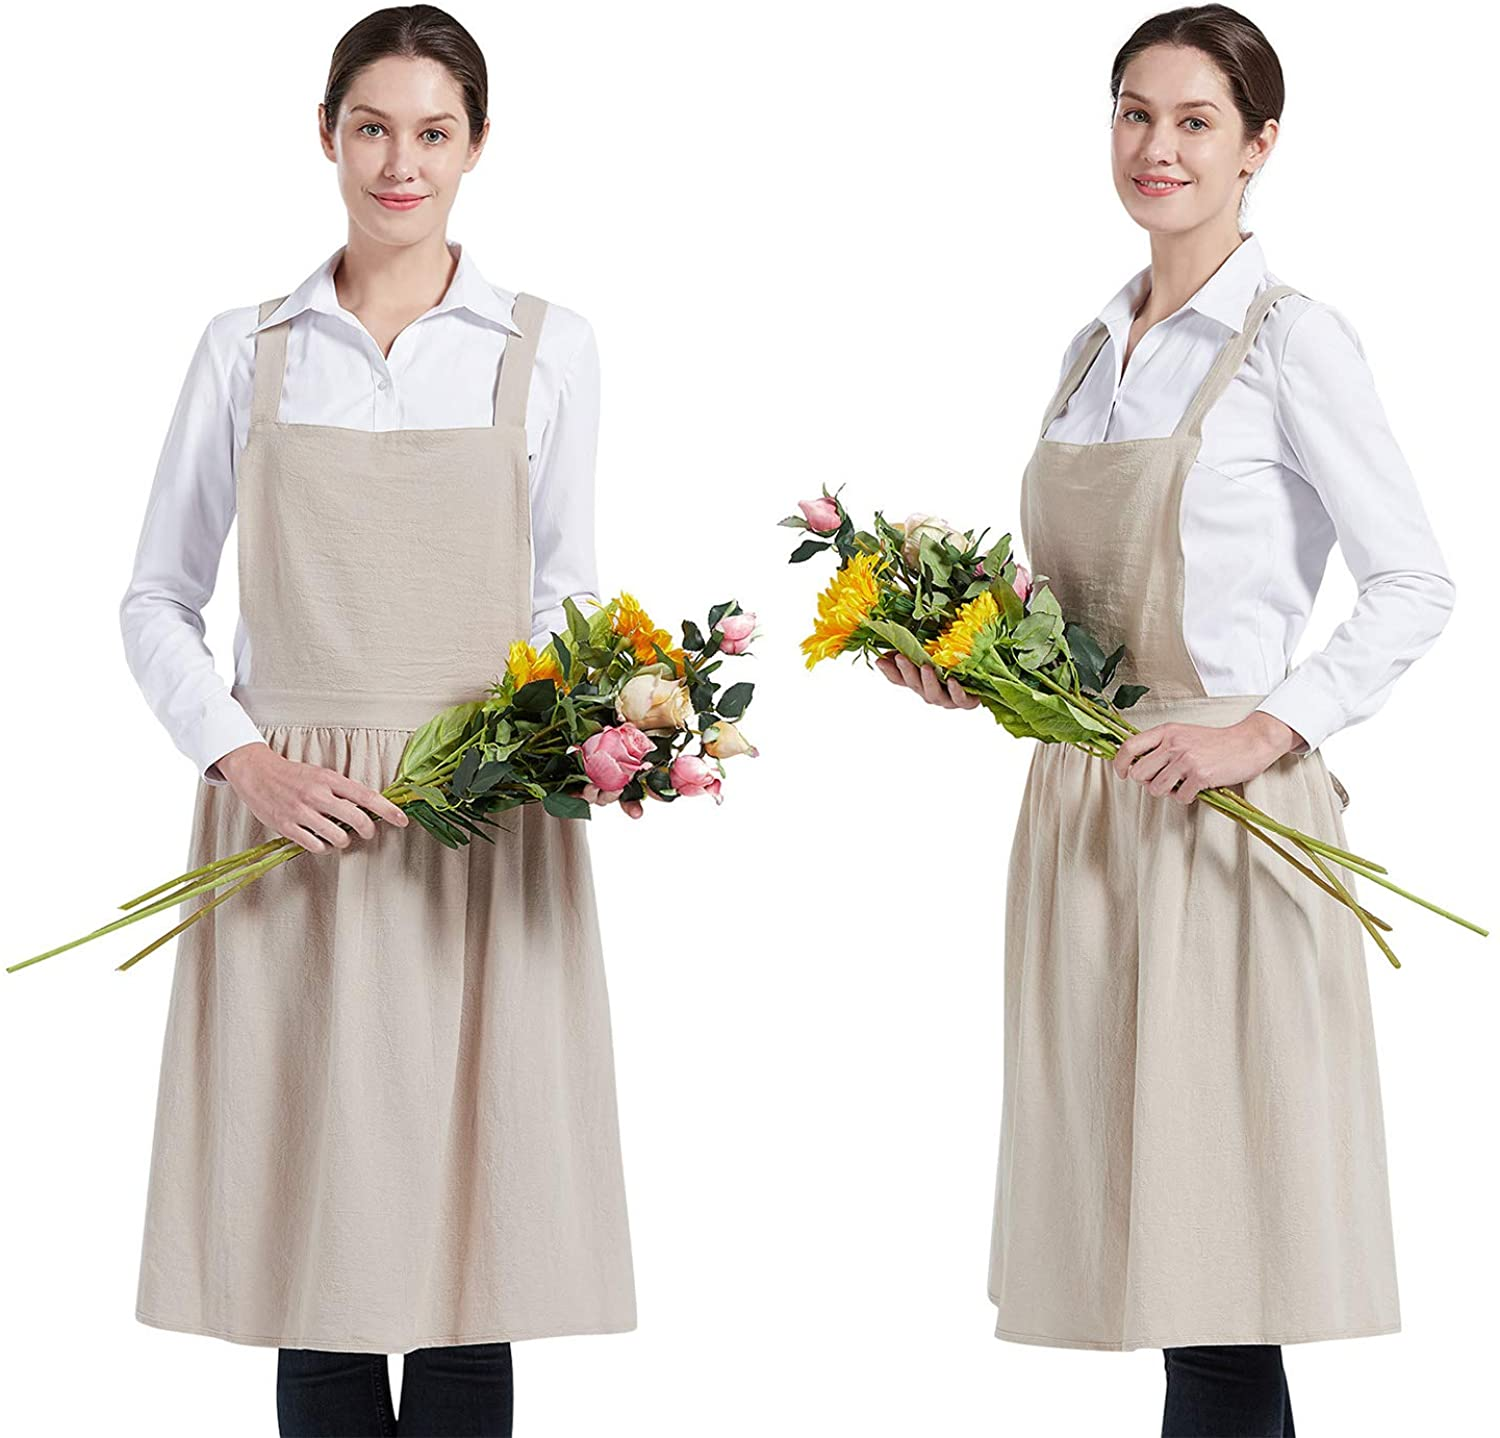 1920s Day Dresses, Tea Dresses, Mature Dresses with Sleeves Nanxson Women Cotton Linen Bib Apron Cross Back Work Apron for CookingBakingCraftingFlower Arrangement CF3046 $17.98 AT vintagedancer.com